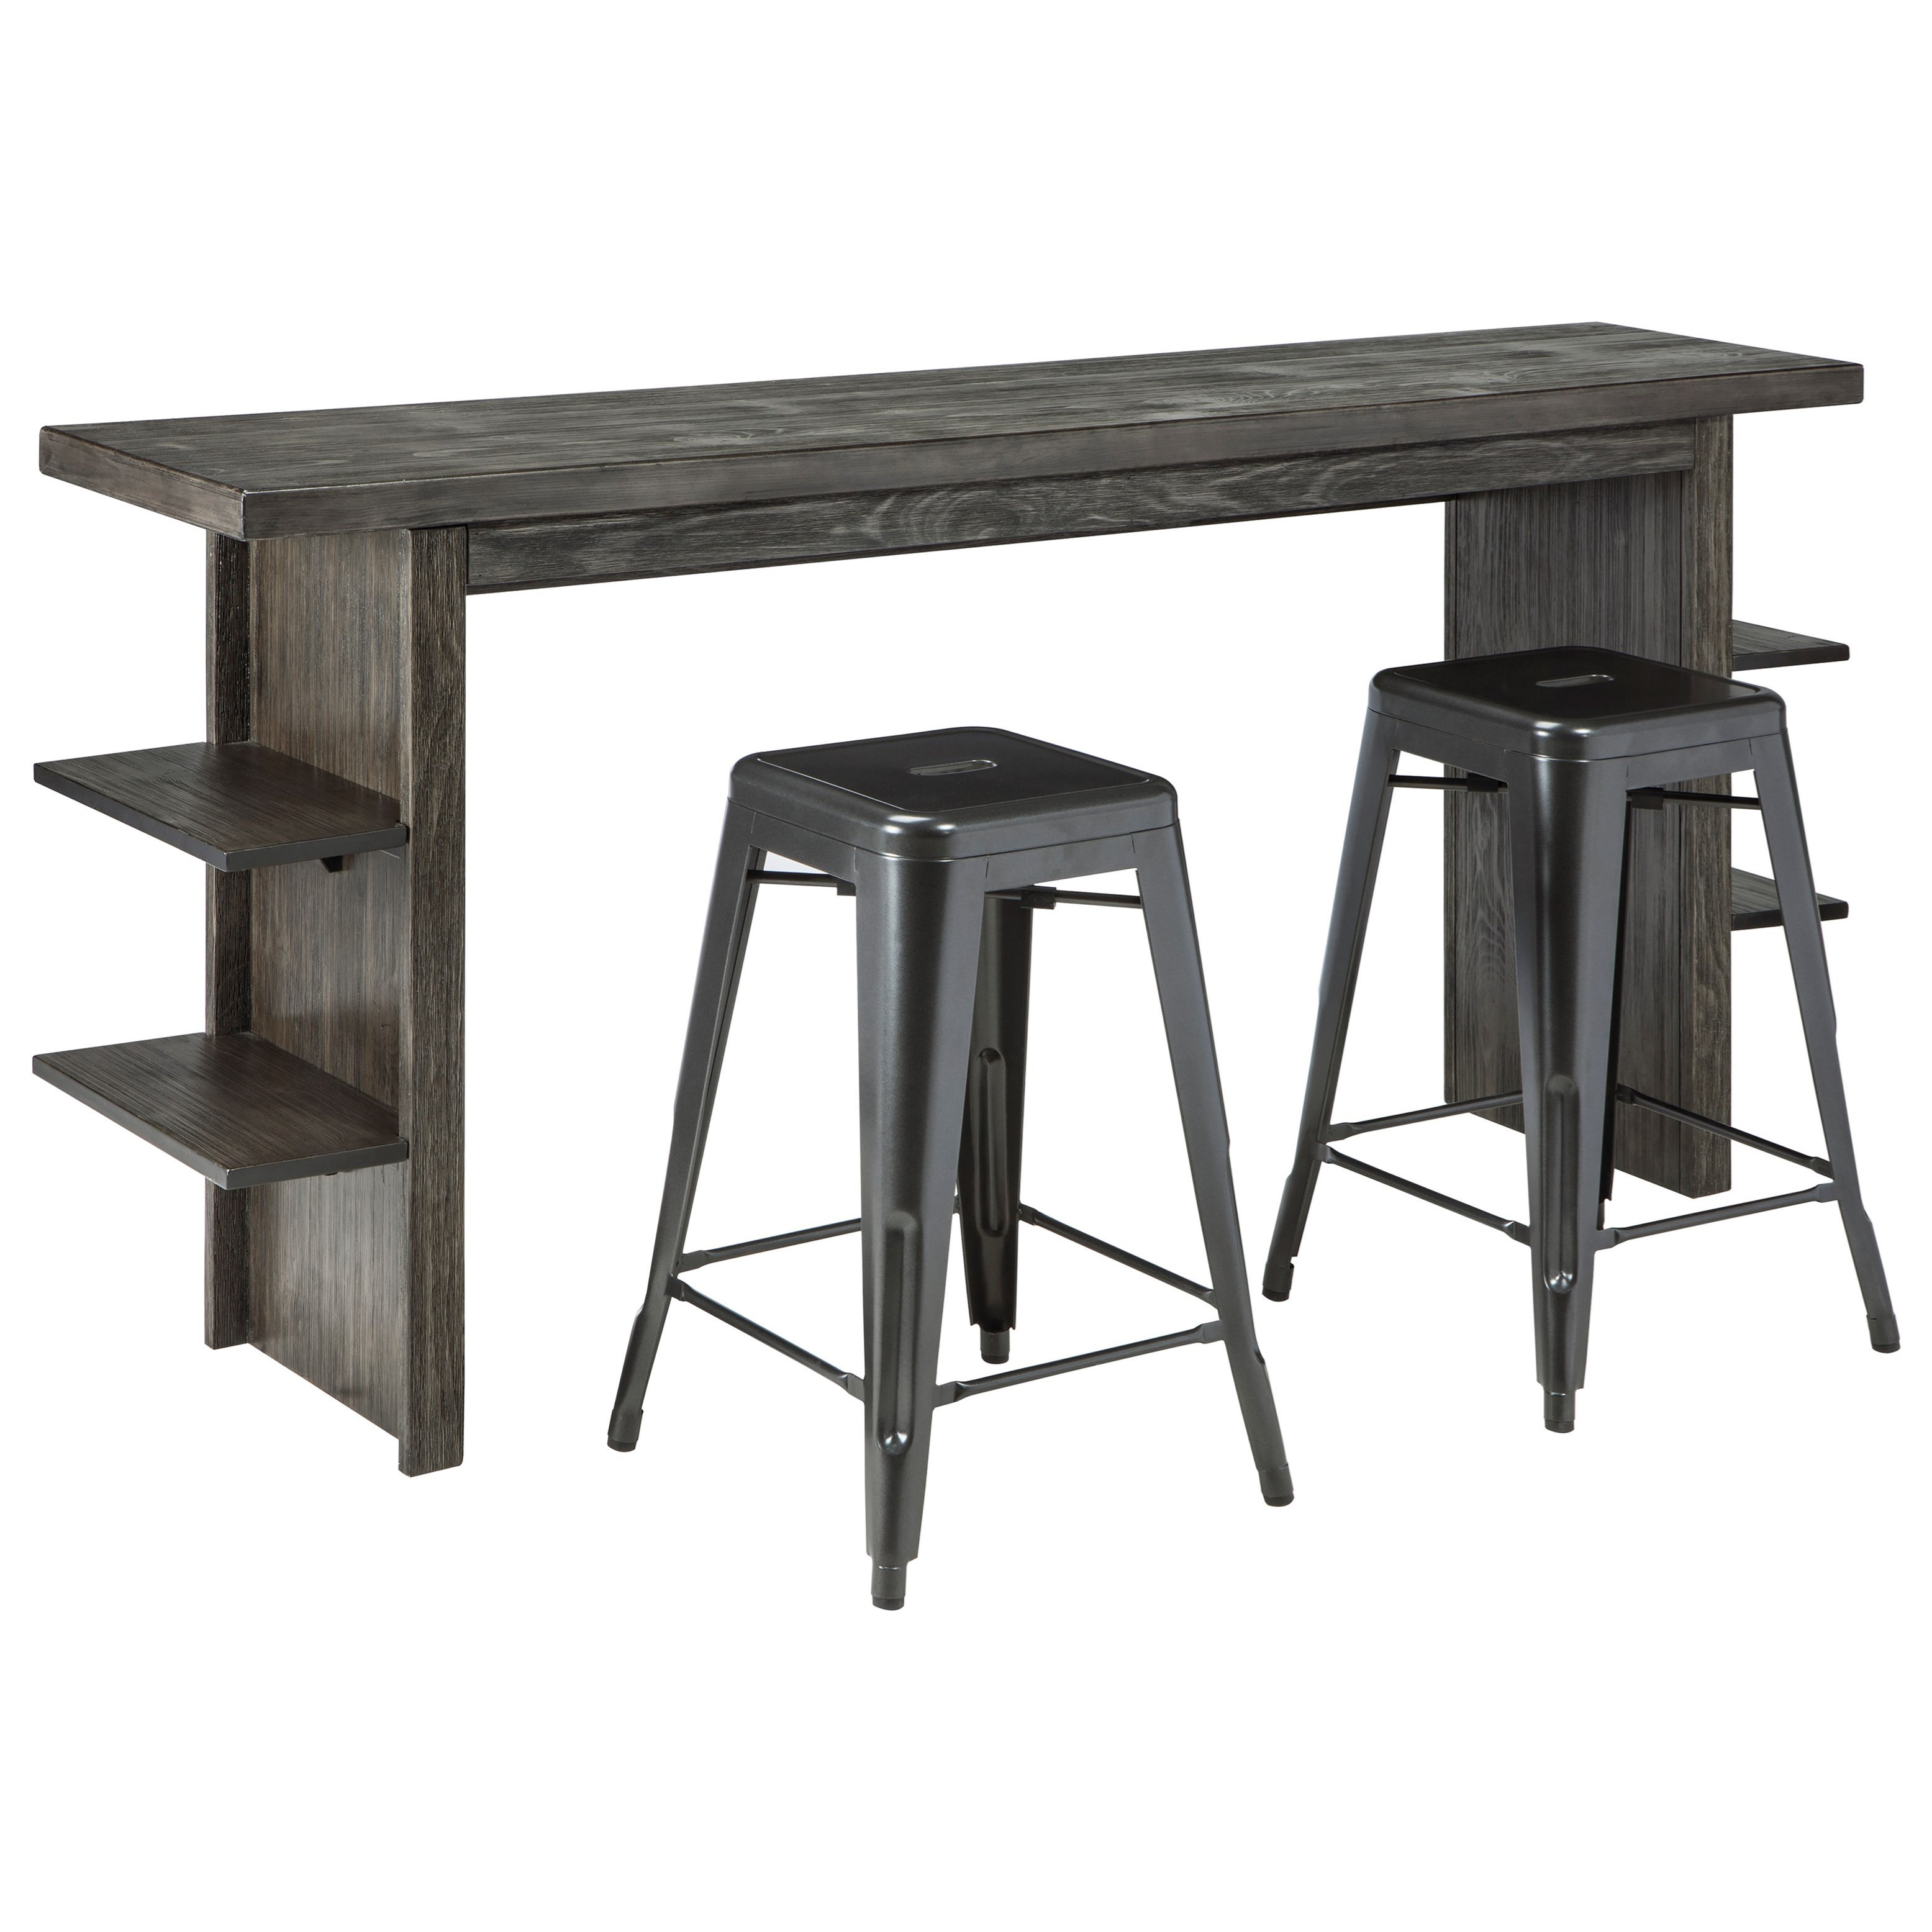 Signature Design by Ashley Lamoille Long Counter Table and Barstool Set - Item Number: D639-33+2xD542-024